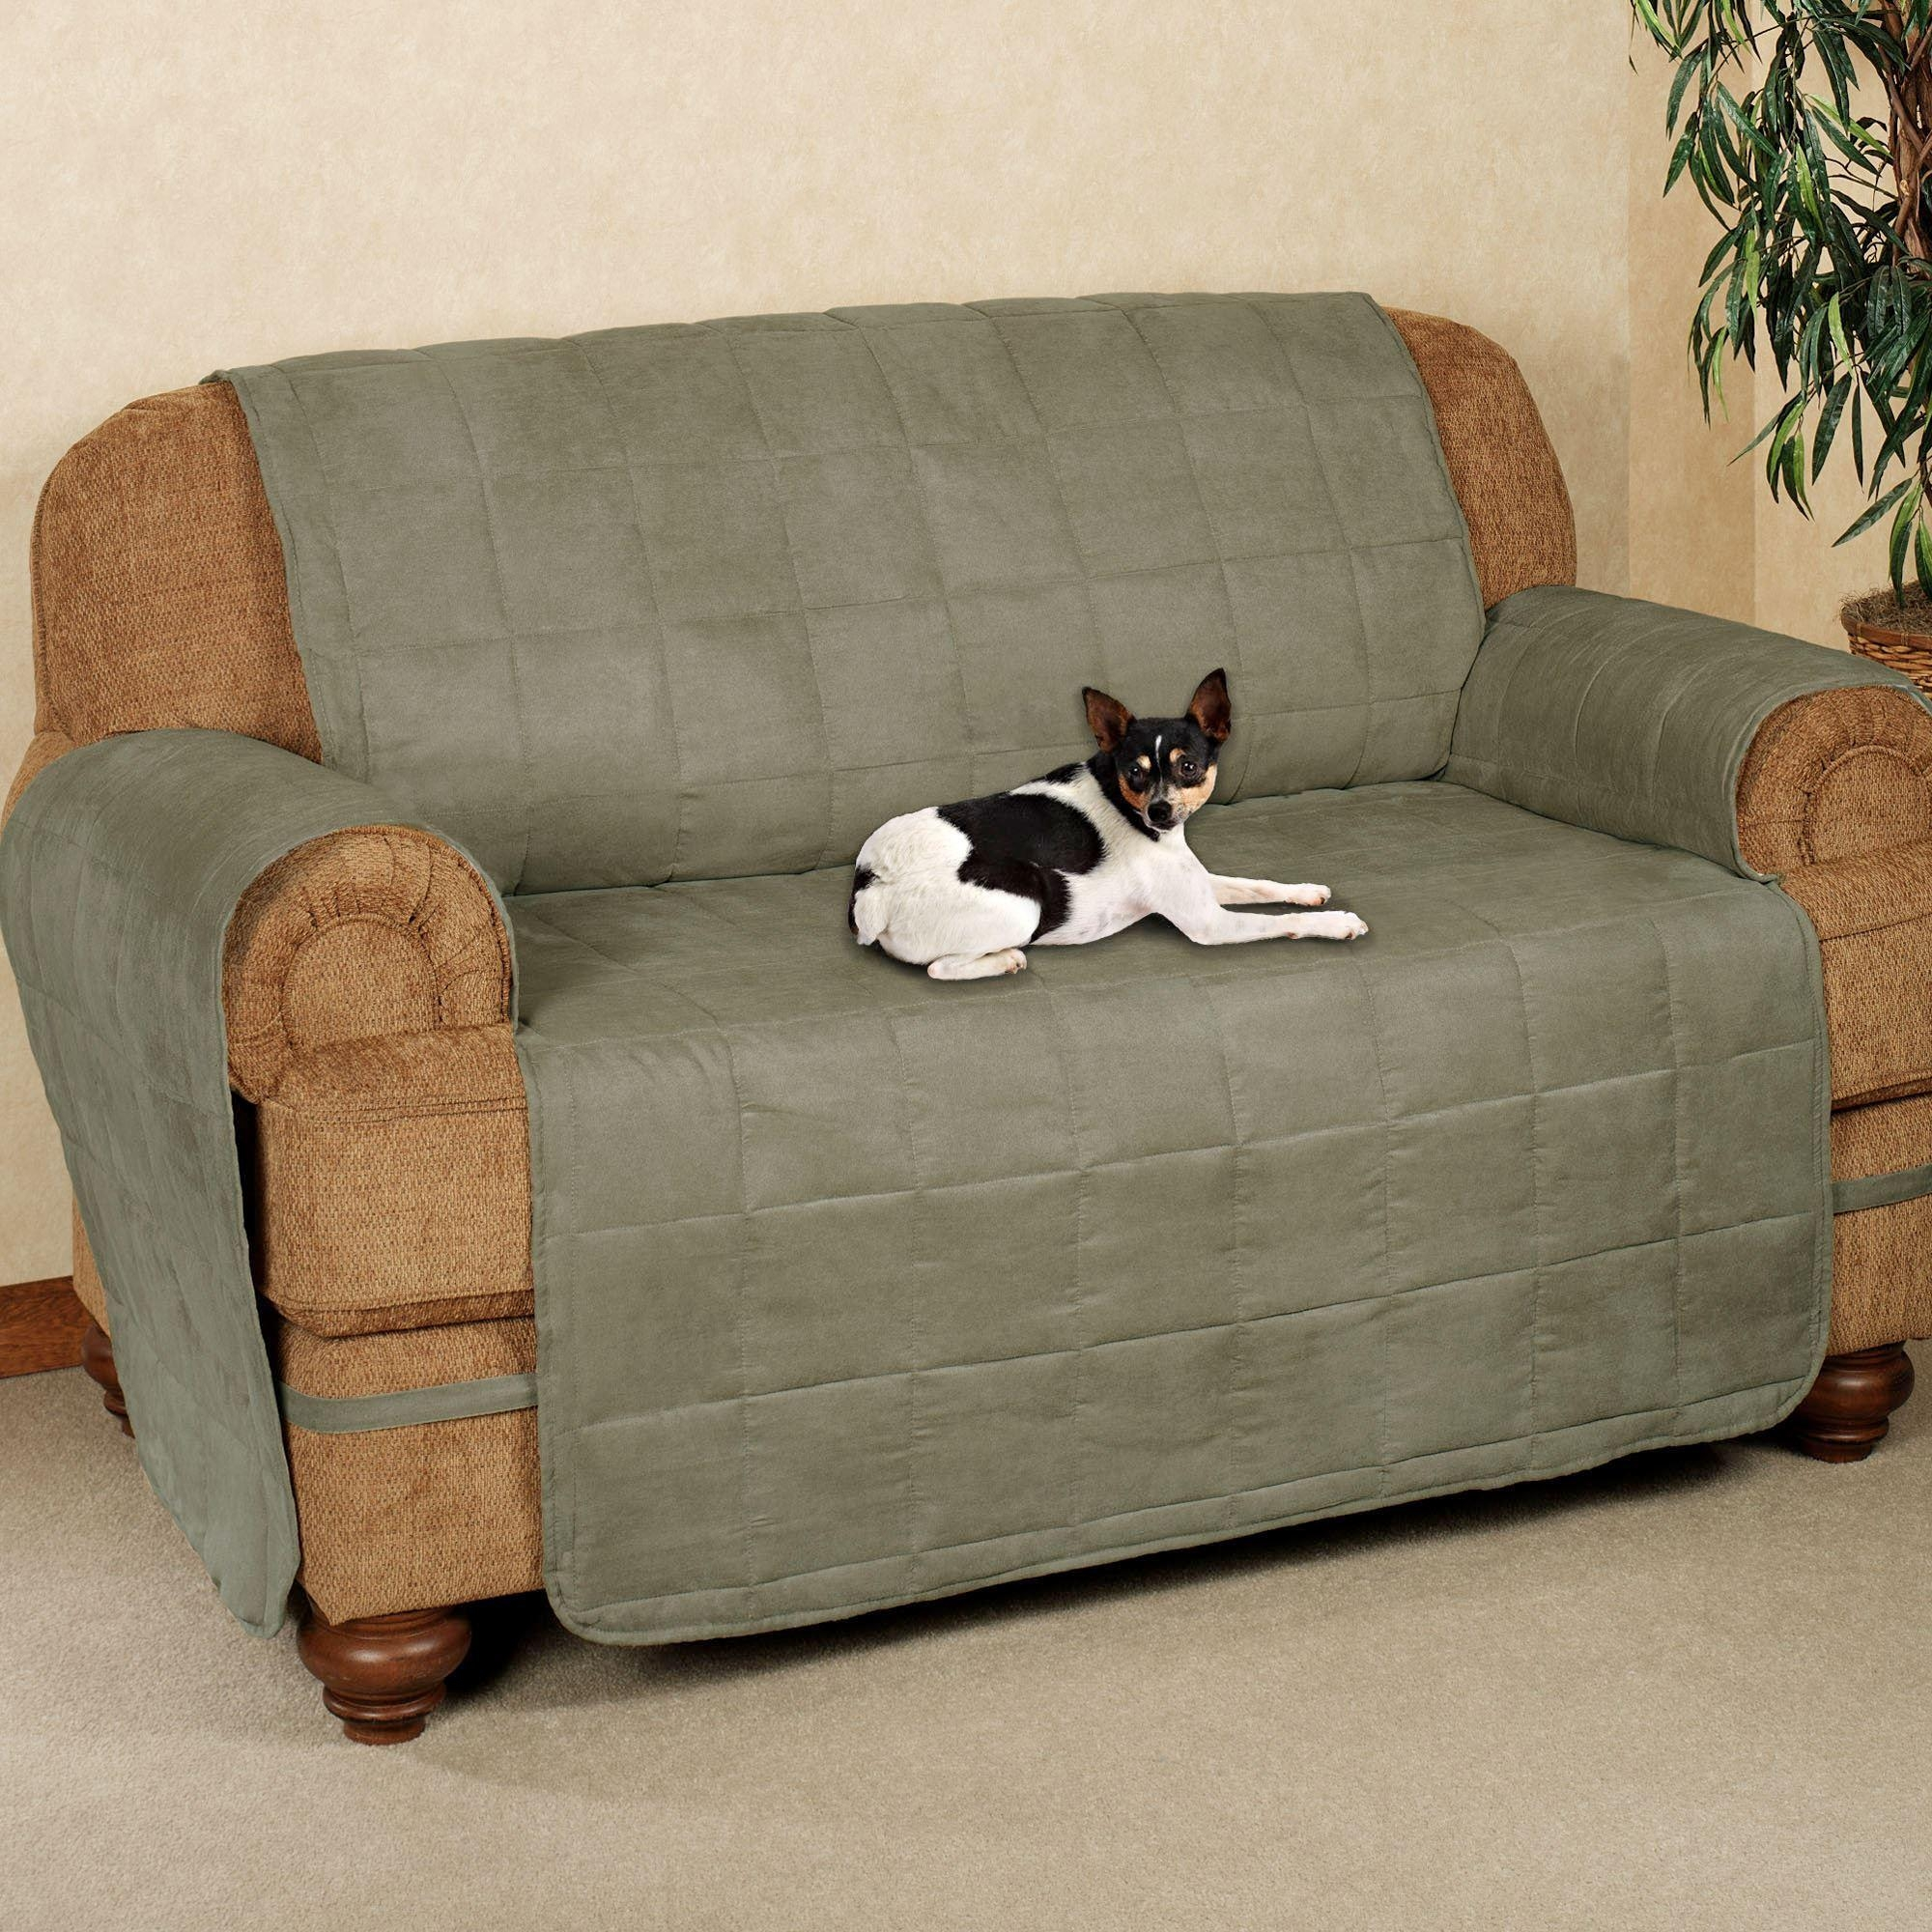 Ultimate Pet Furniture Protectors With Straps Regarding Covers For Sofas And Chairs (Image 20 of 20)